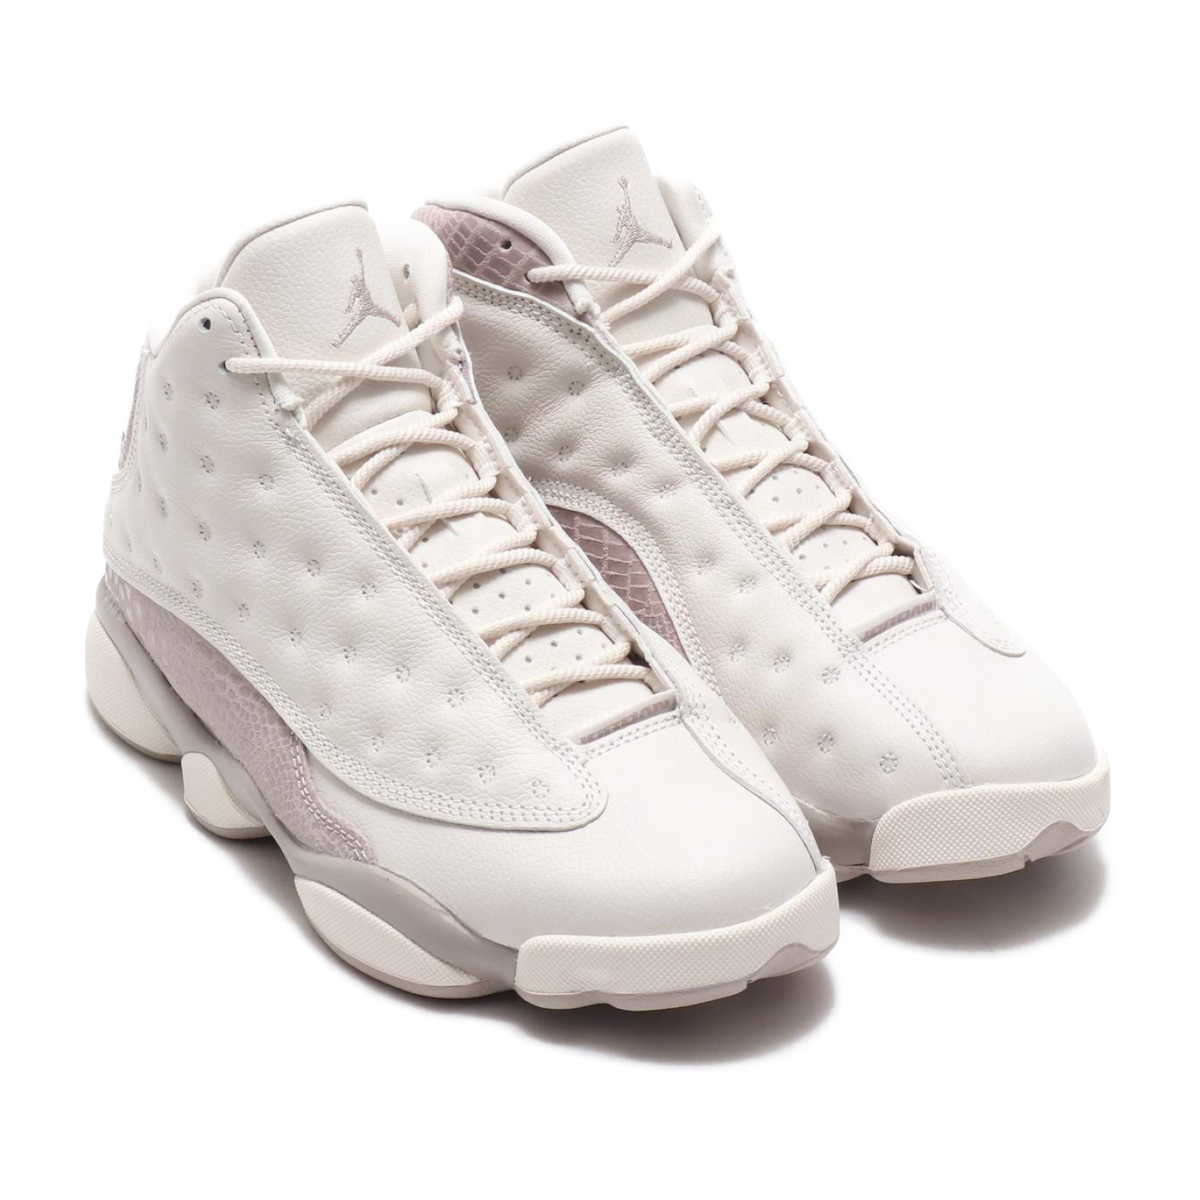 9c033c8be397 NIKE WMNS AIR JORDAN 13 RETRO (nostalgic Nike women Air Jordan 13)  PHANTOM MOON PARTICLE 18FA-S